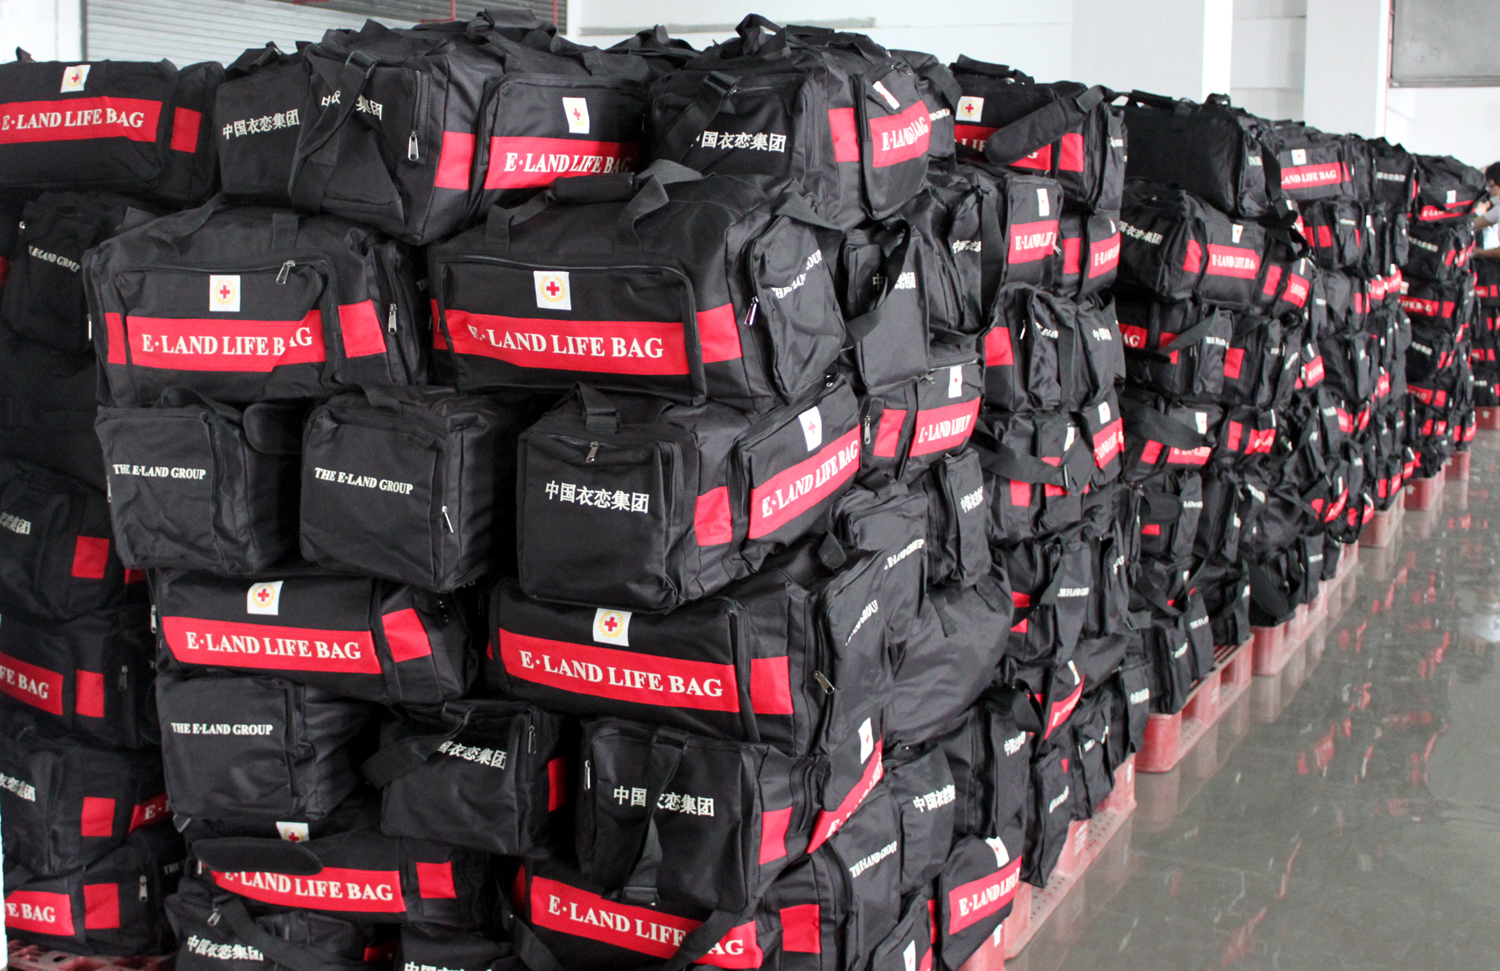 Stacks of emergency kits ready to be distributed.